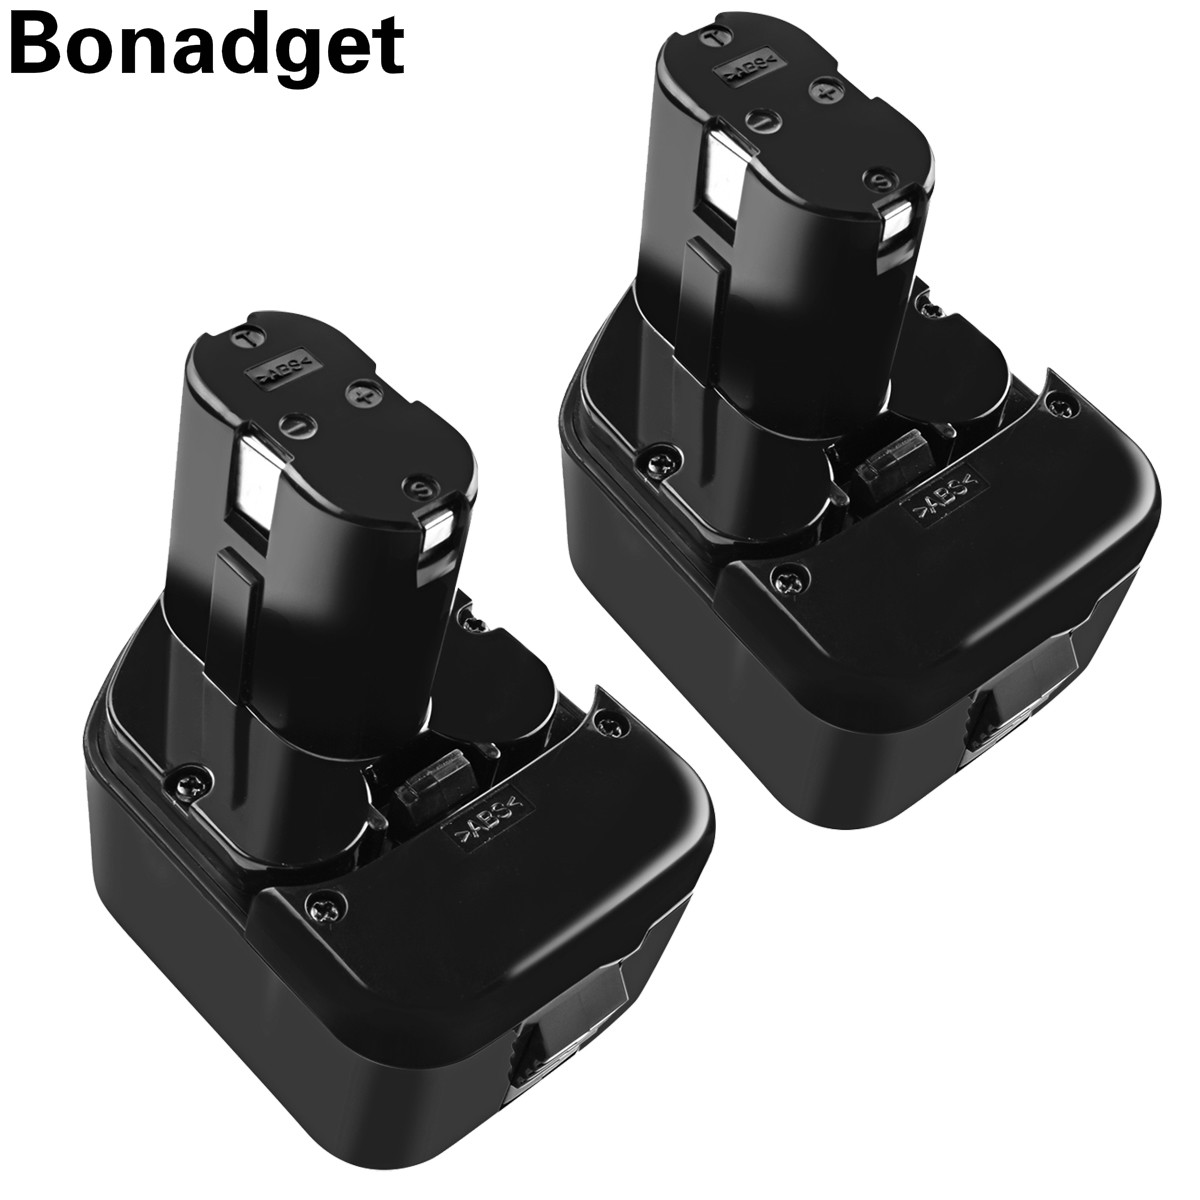 Bonadget High Quality 3500mAh 12V 3.0Ah Tool Battery For Hitachi EB1214S 12V EB1220BL EB1212S WR12DMR CD4D DH15DV C5D DS 12DVF3